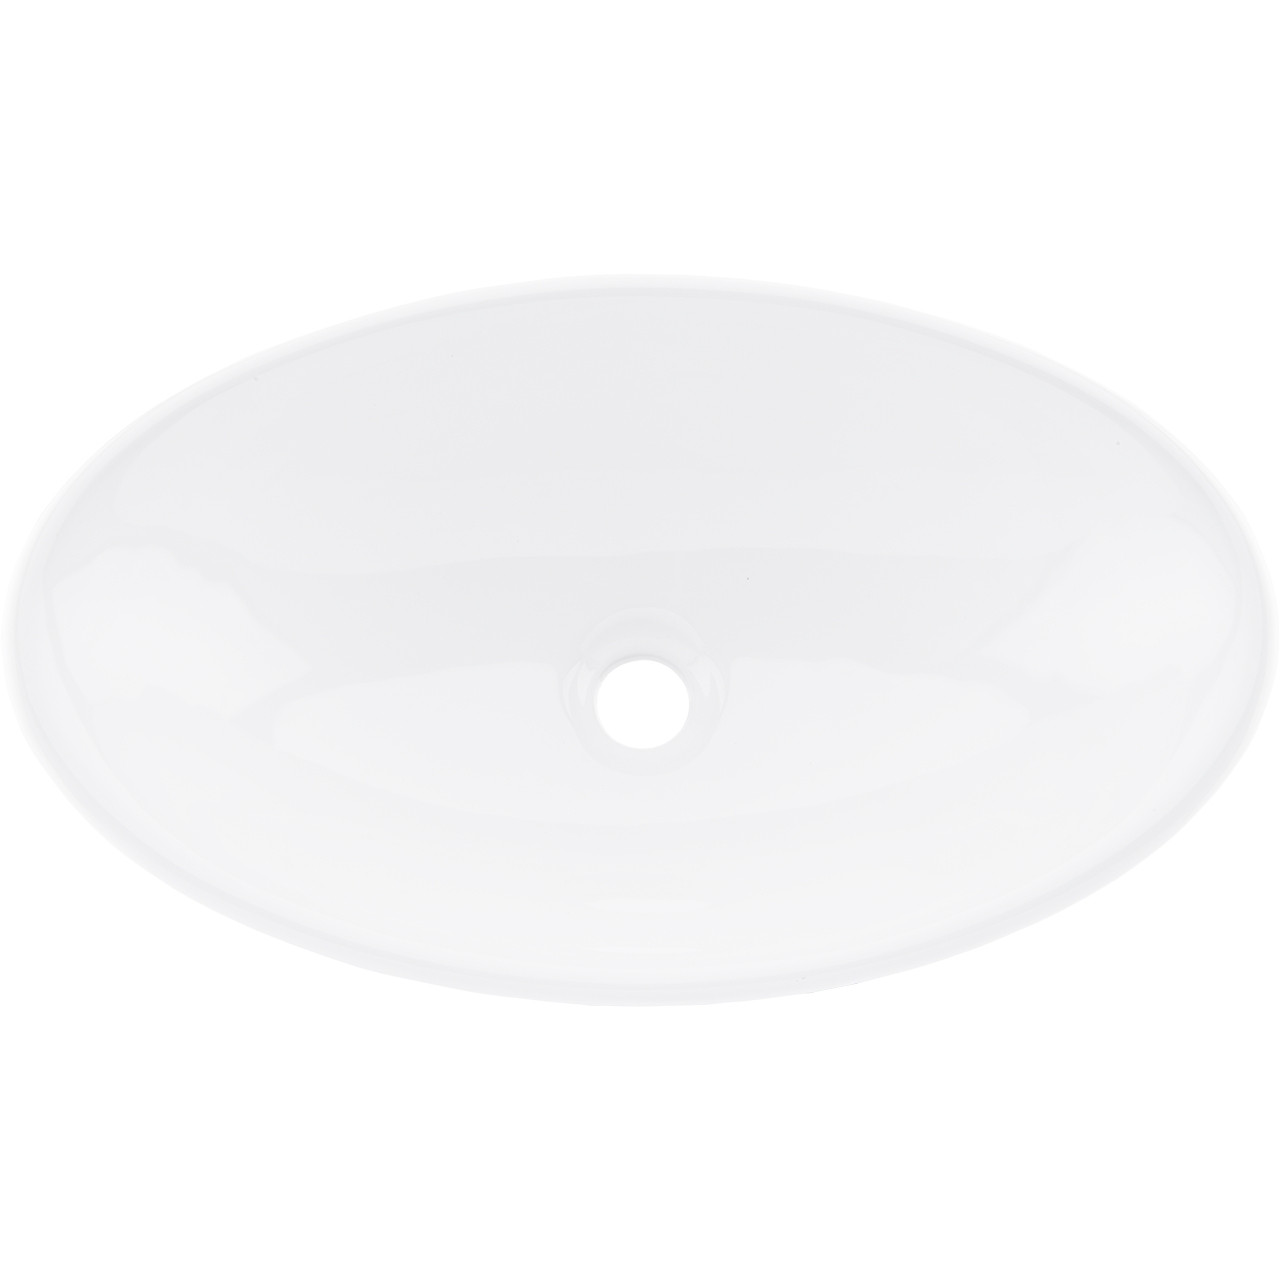 Sagres Counter Top Basin